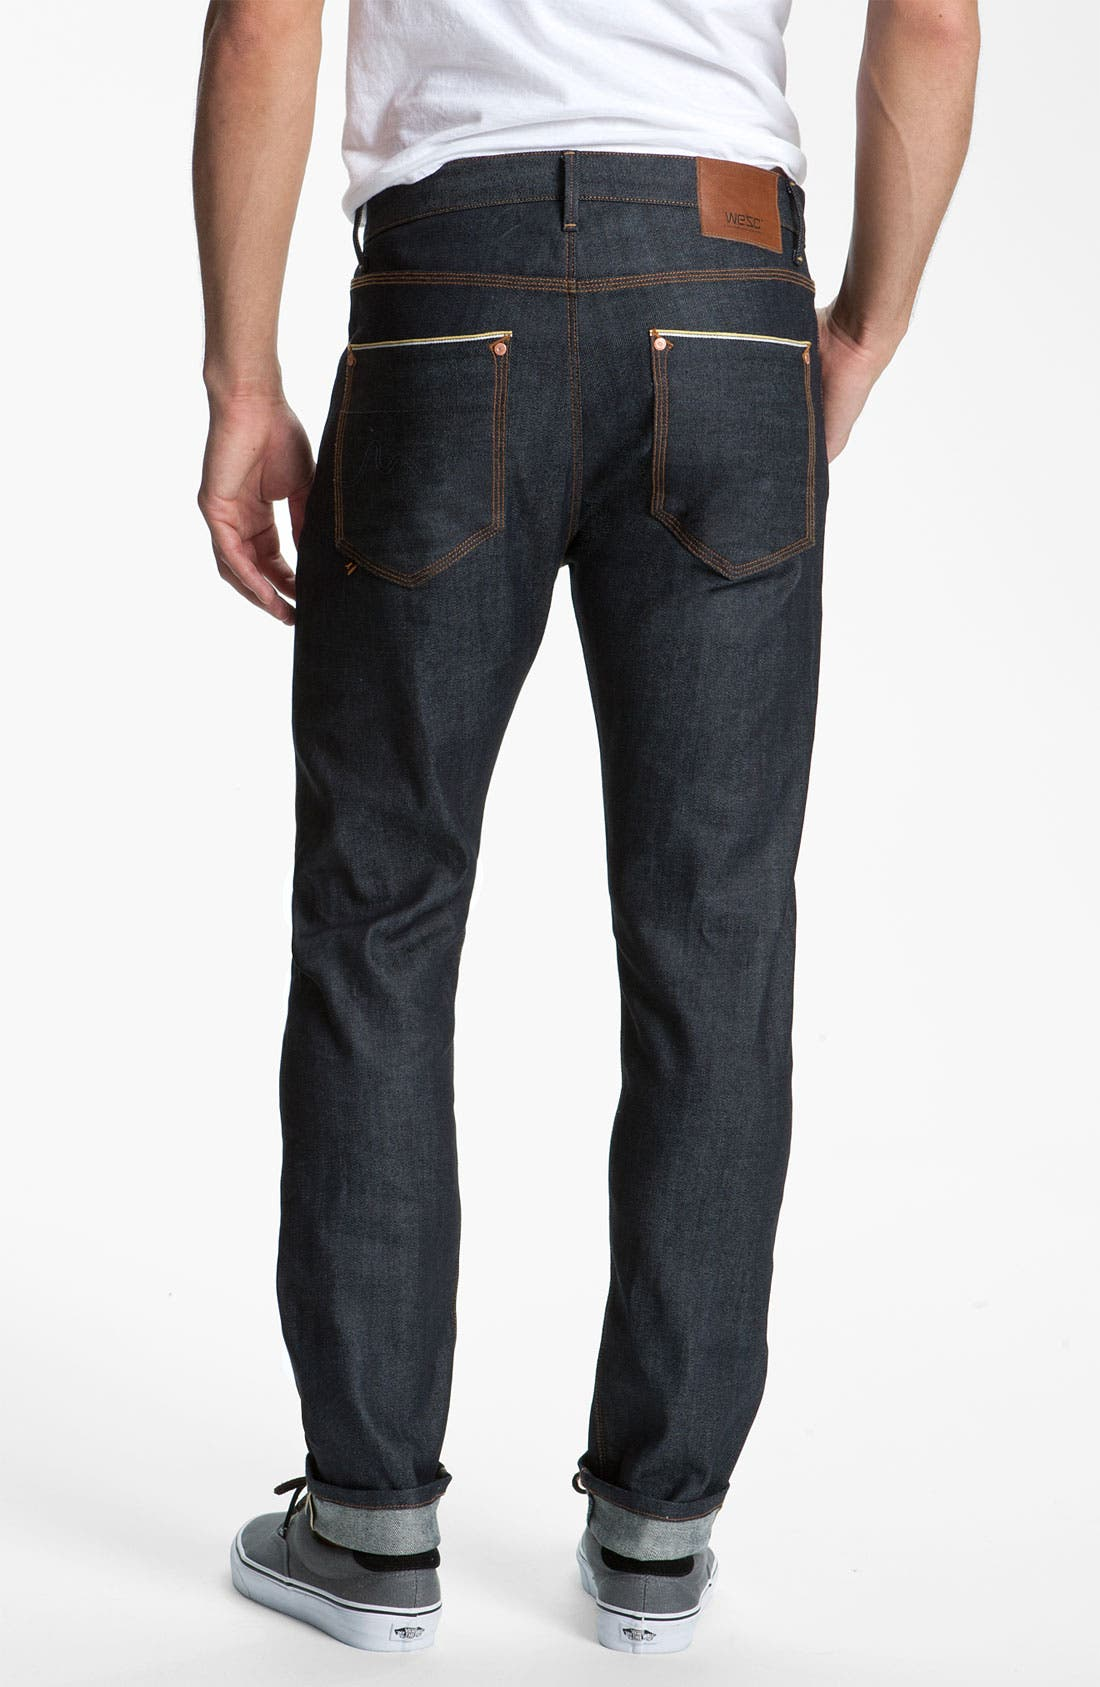 Alternate Image 1 Selected - WeSC 'Eddy' Slim Fit Jeans (Raw Stretch Selvage)